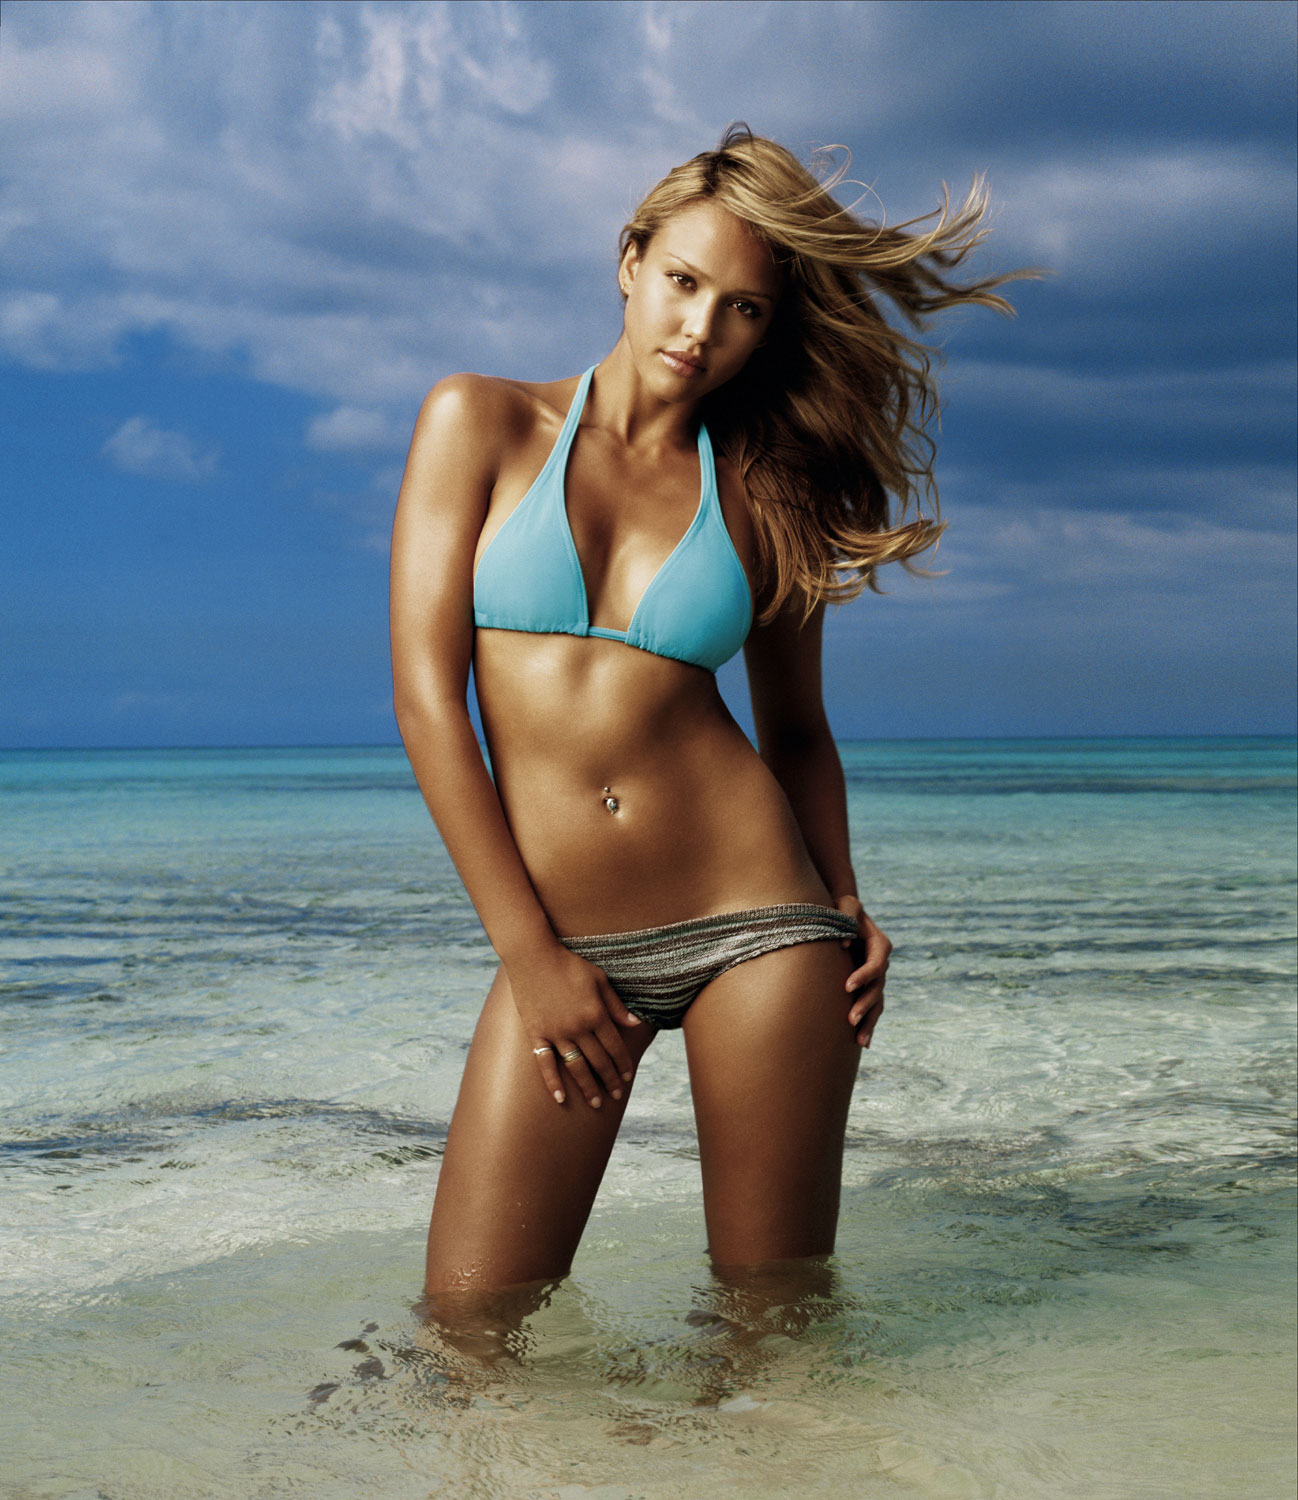 http://1.bp.blogspot.com/-UICFqZ8n-VU/T3f51NJ9Q4I/AAAAAAAAAcs/86qNNQHW5Mo/s1600/Beach+Girls+Wallpapers+2012.jpg